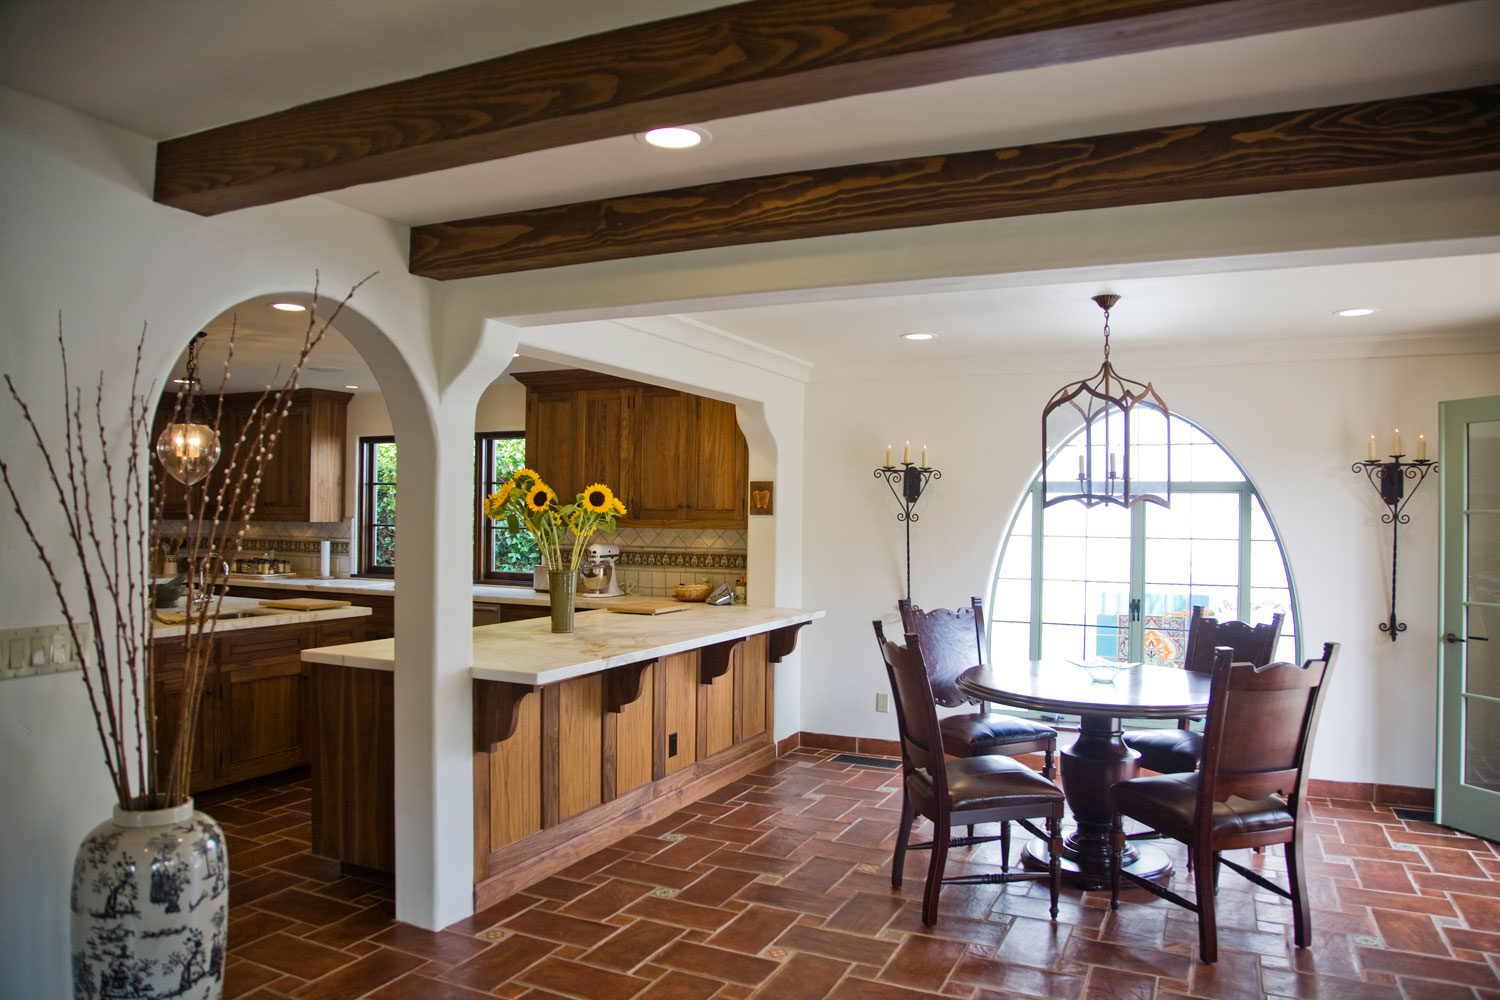 08-Spanish-style-breakfast-nook-curved-window-gary-drake-general-contractor.jpg